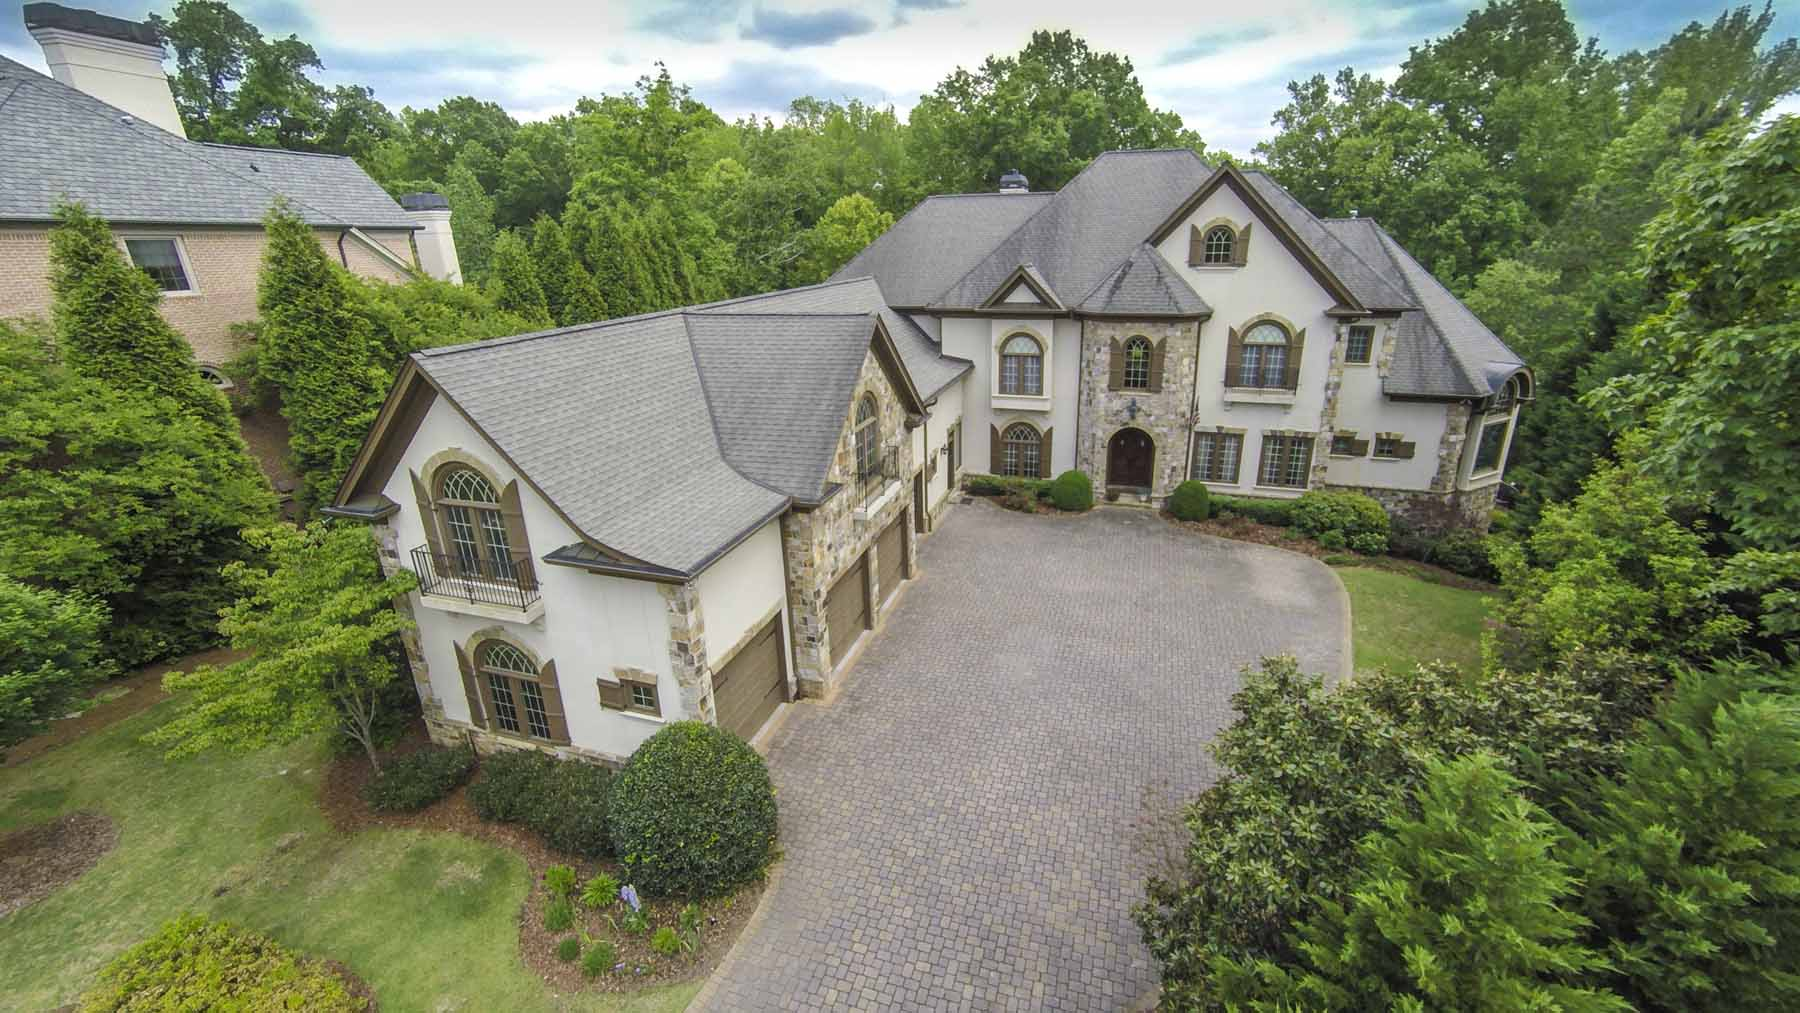 Single Family Home for Sale at Stunning Home Meets Modern Updates on the Sparkling Chattahoochee River 500 Covington Cove Alpharetta, Georgia, 30022 United States